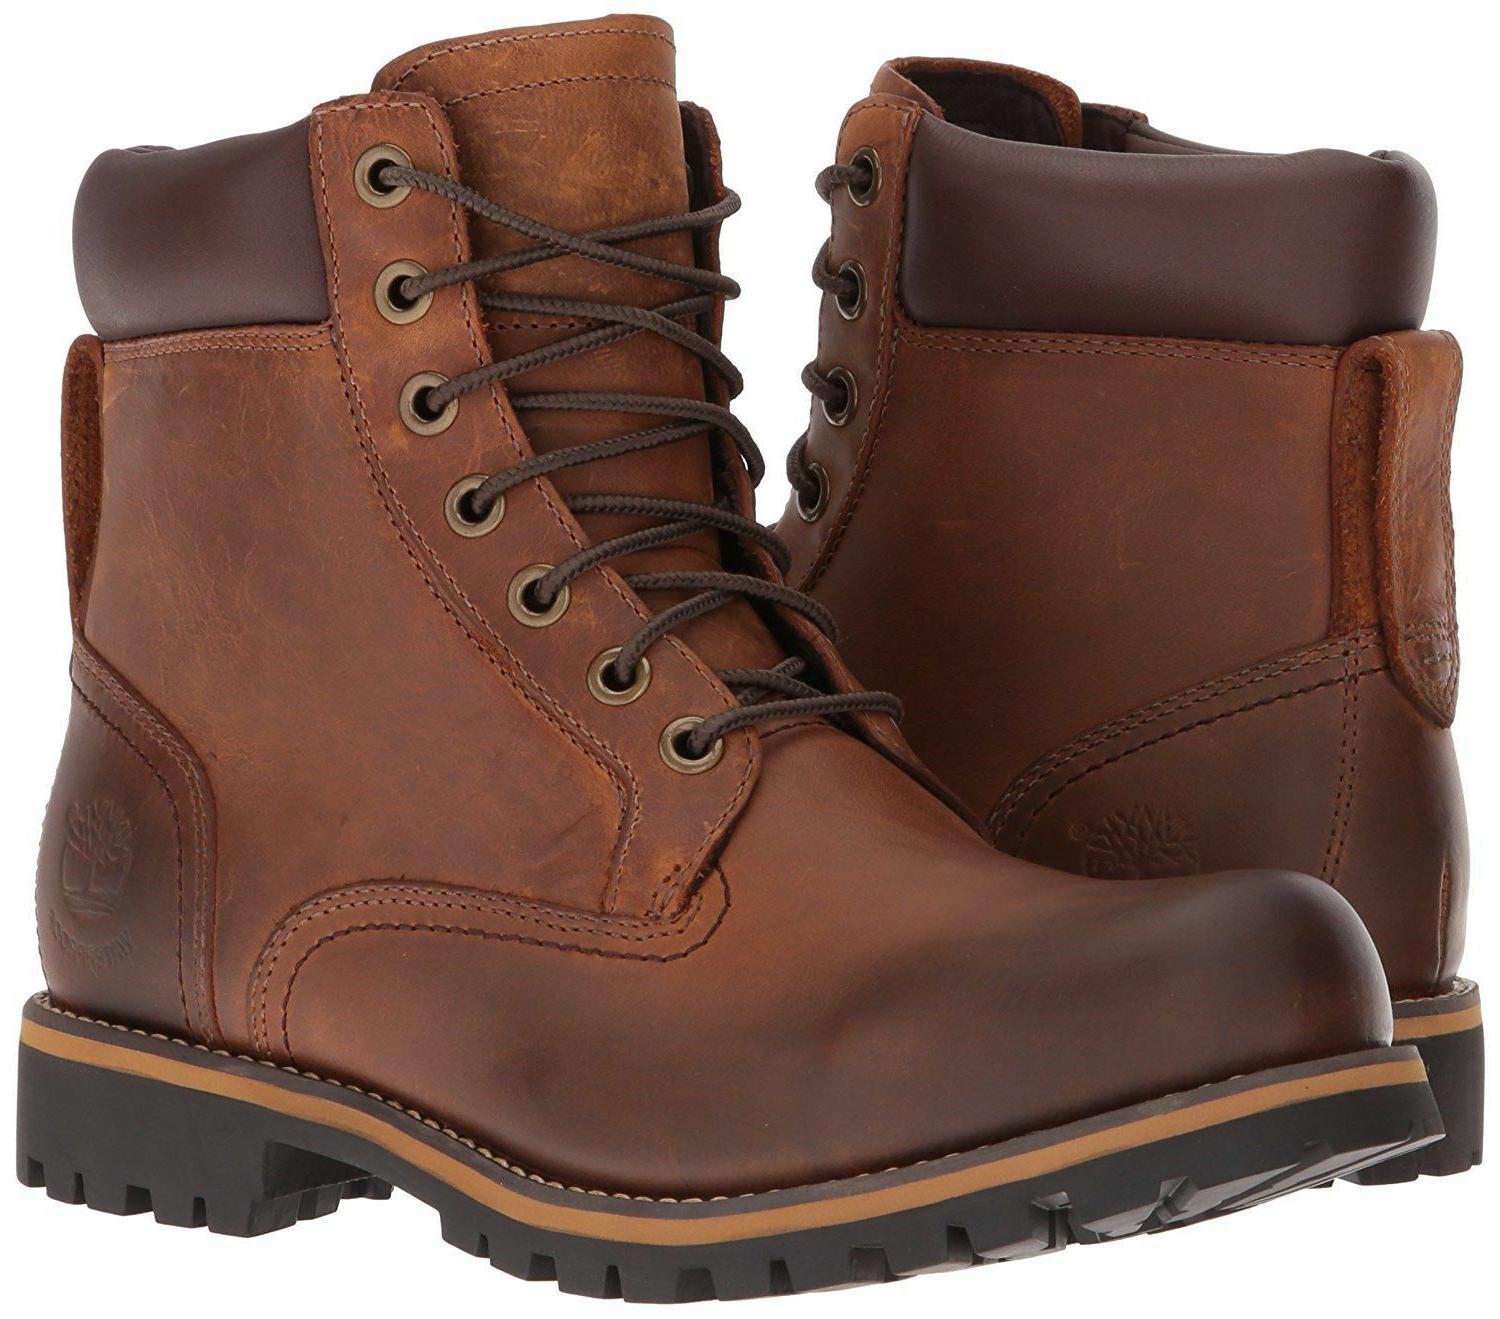 Men's Shoes Timberland Rugged 6-inch Waterproof Leather Boot